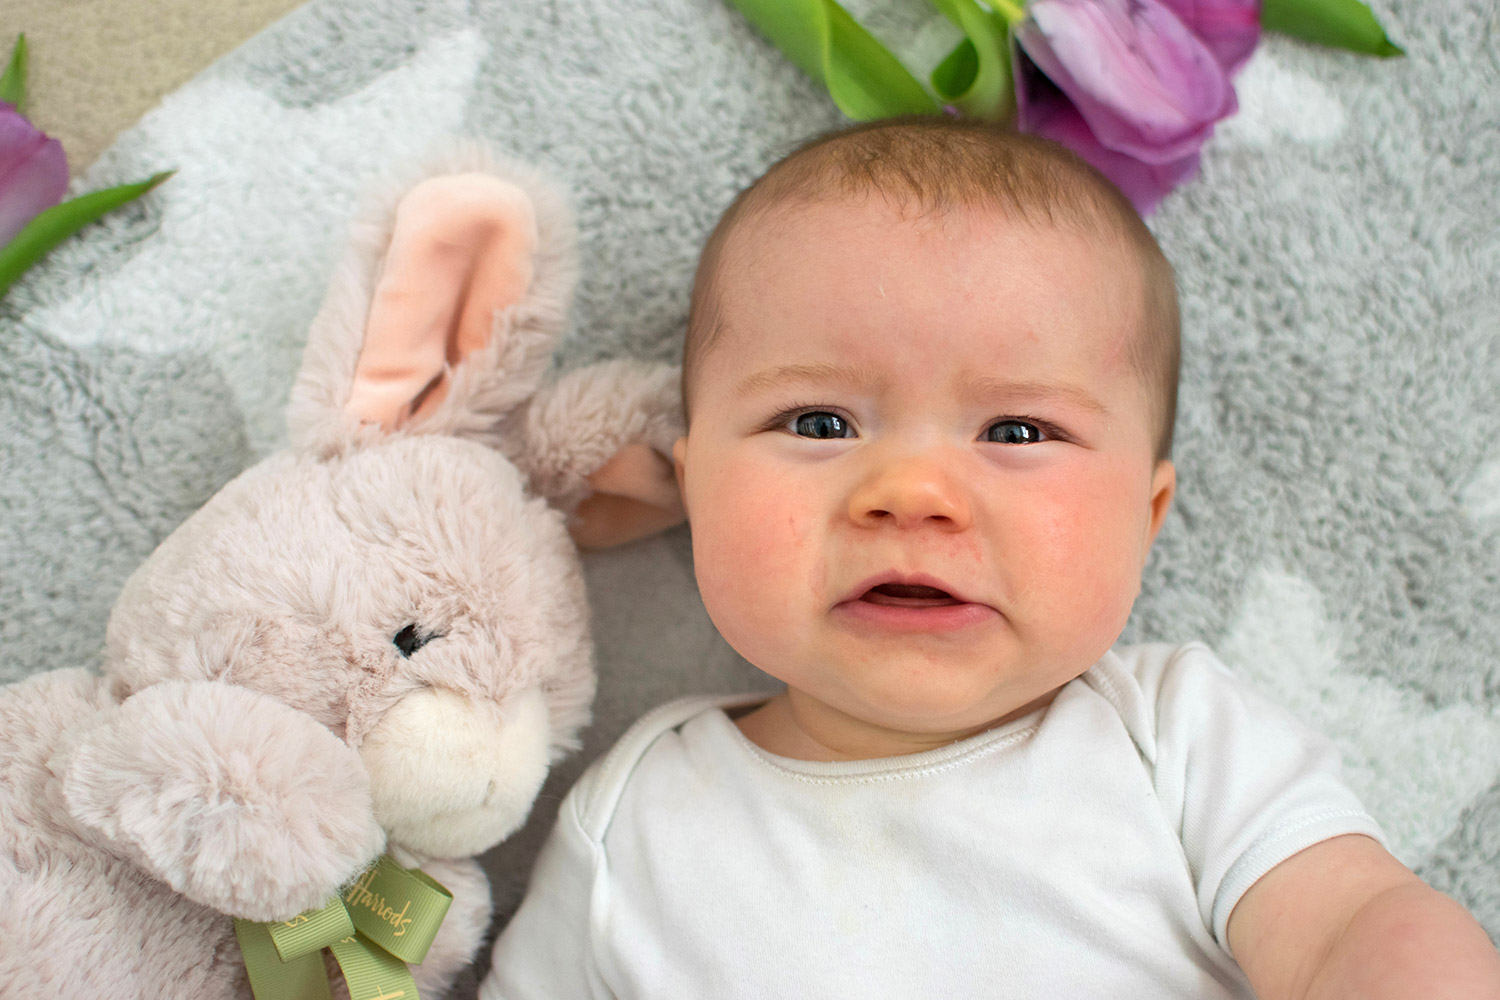 Baby Jesse Blue at 9 months old - Baby boy with Harrods Easter bunny cuddly soft toy and purple tulips for Easter